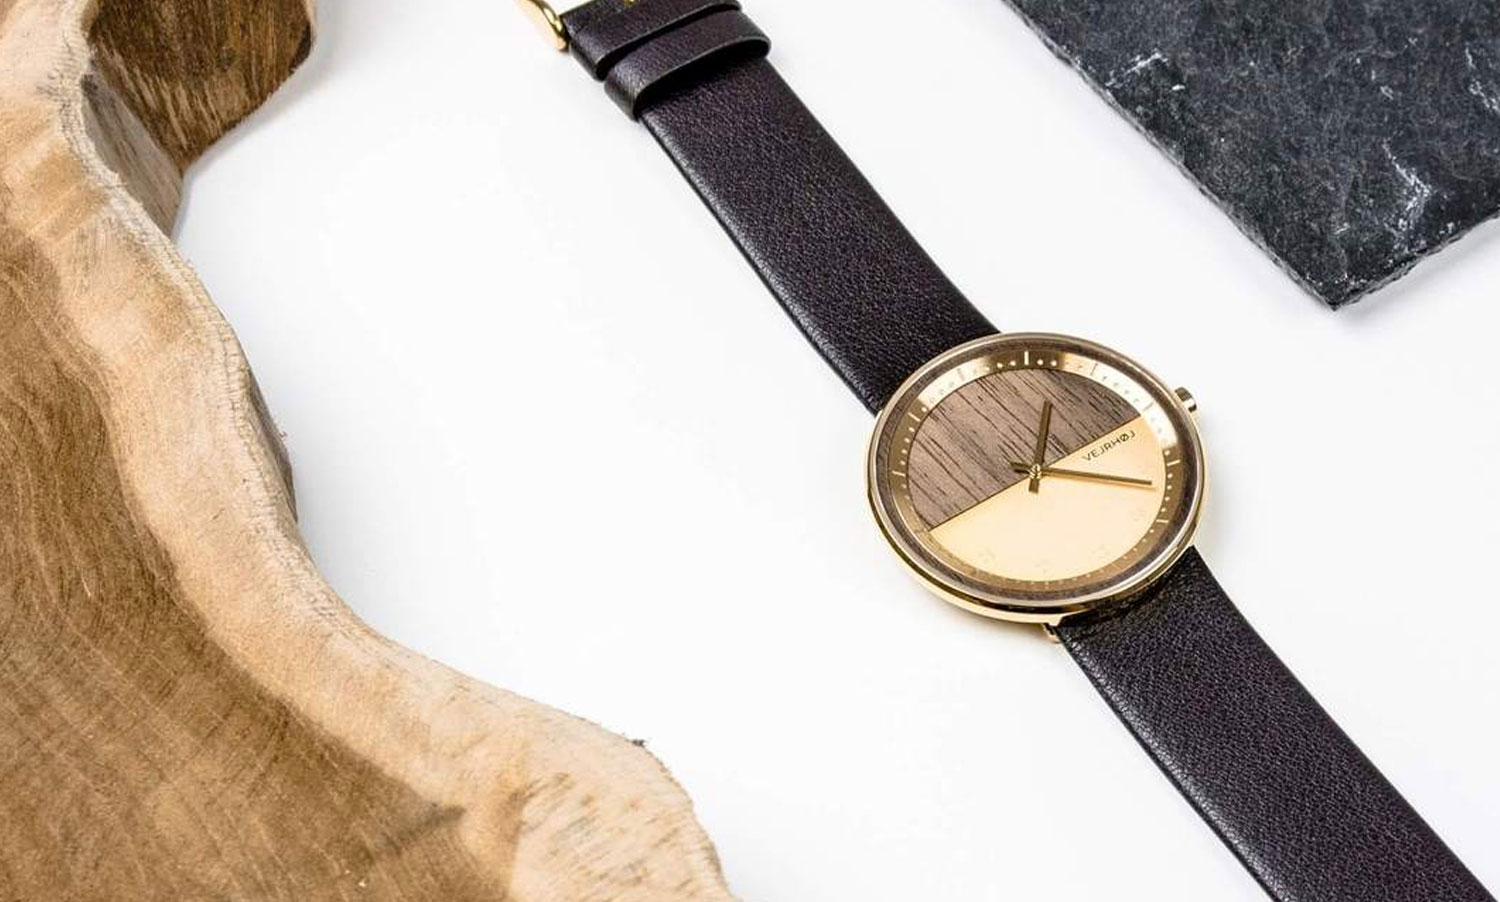 wooden-watch-Walnut-wood-stainless-steel-gold-finish-6